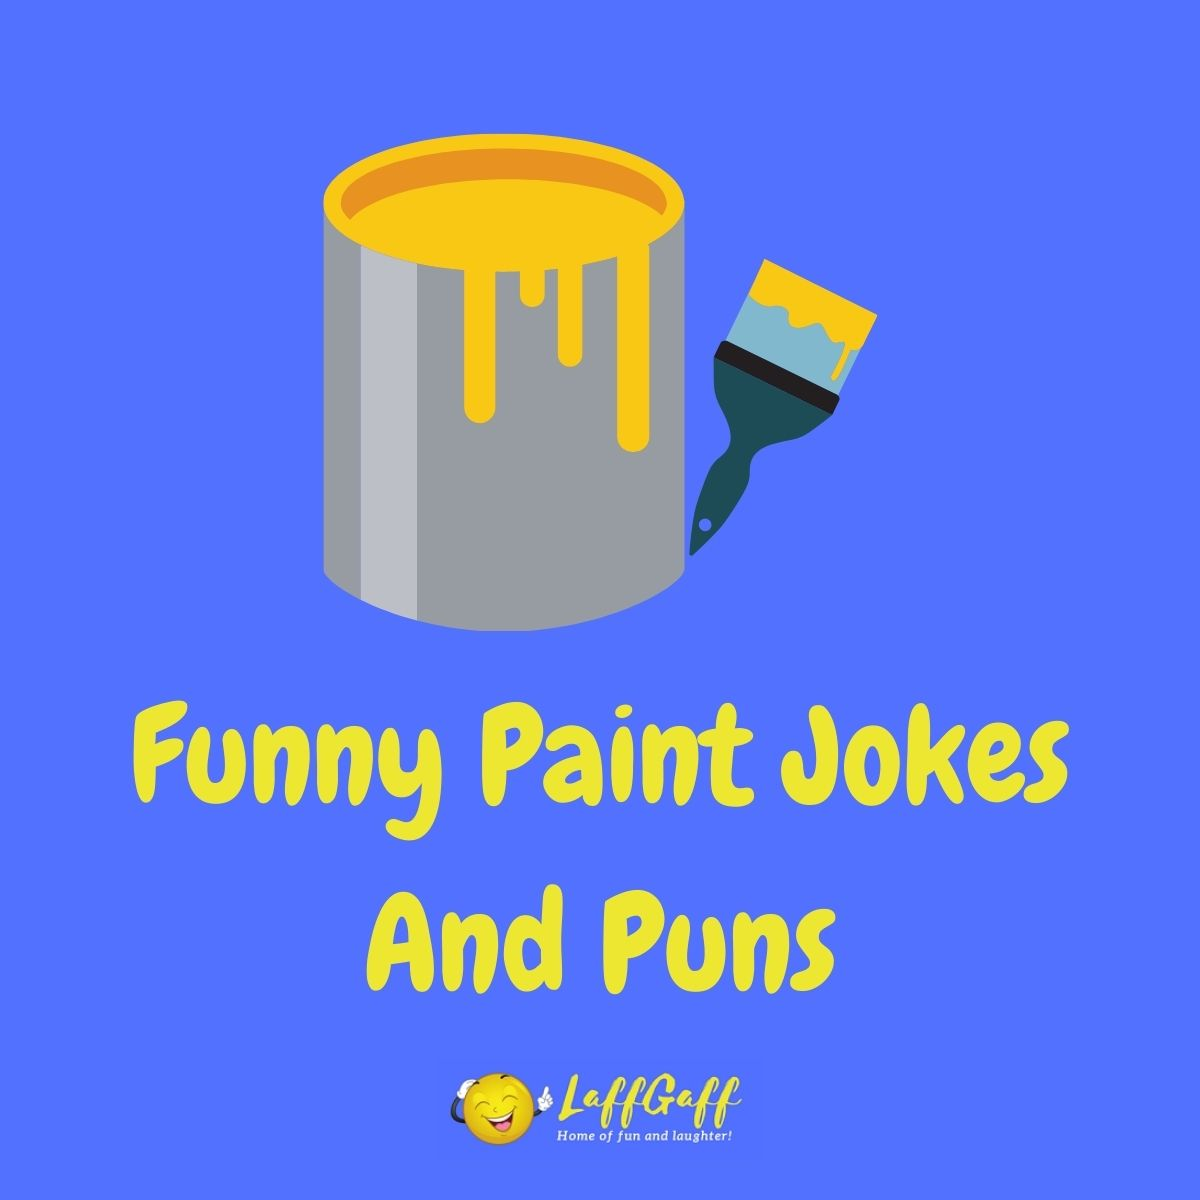 Featured image for a page of funny paint jokes and puns.